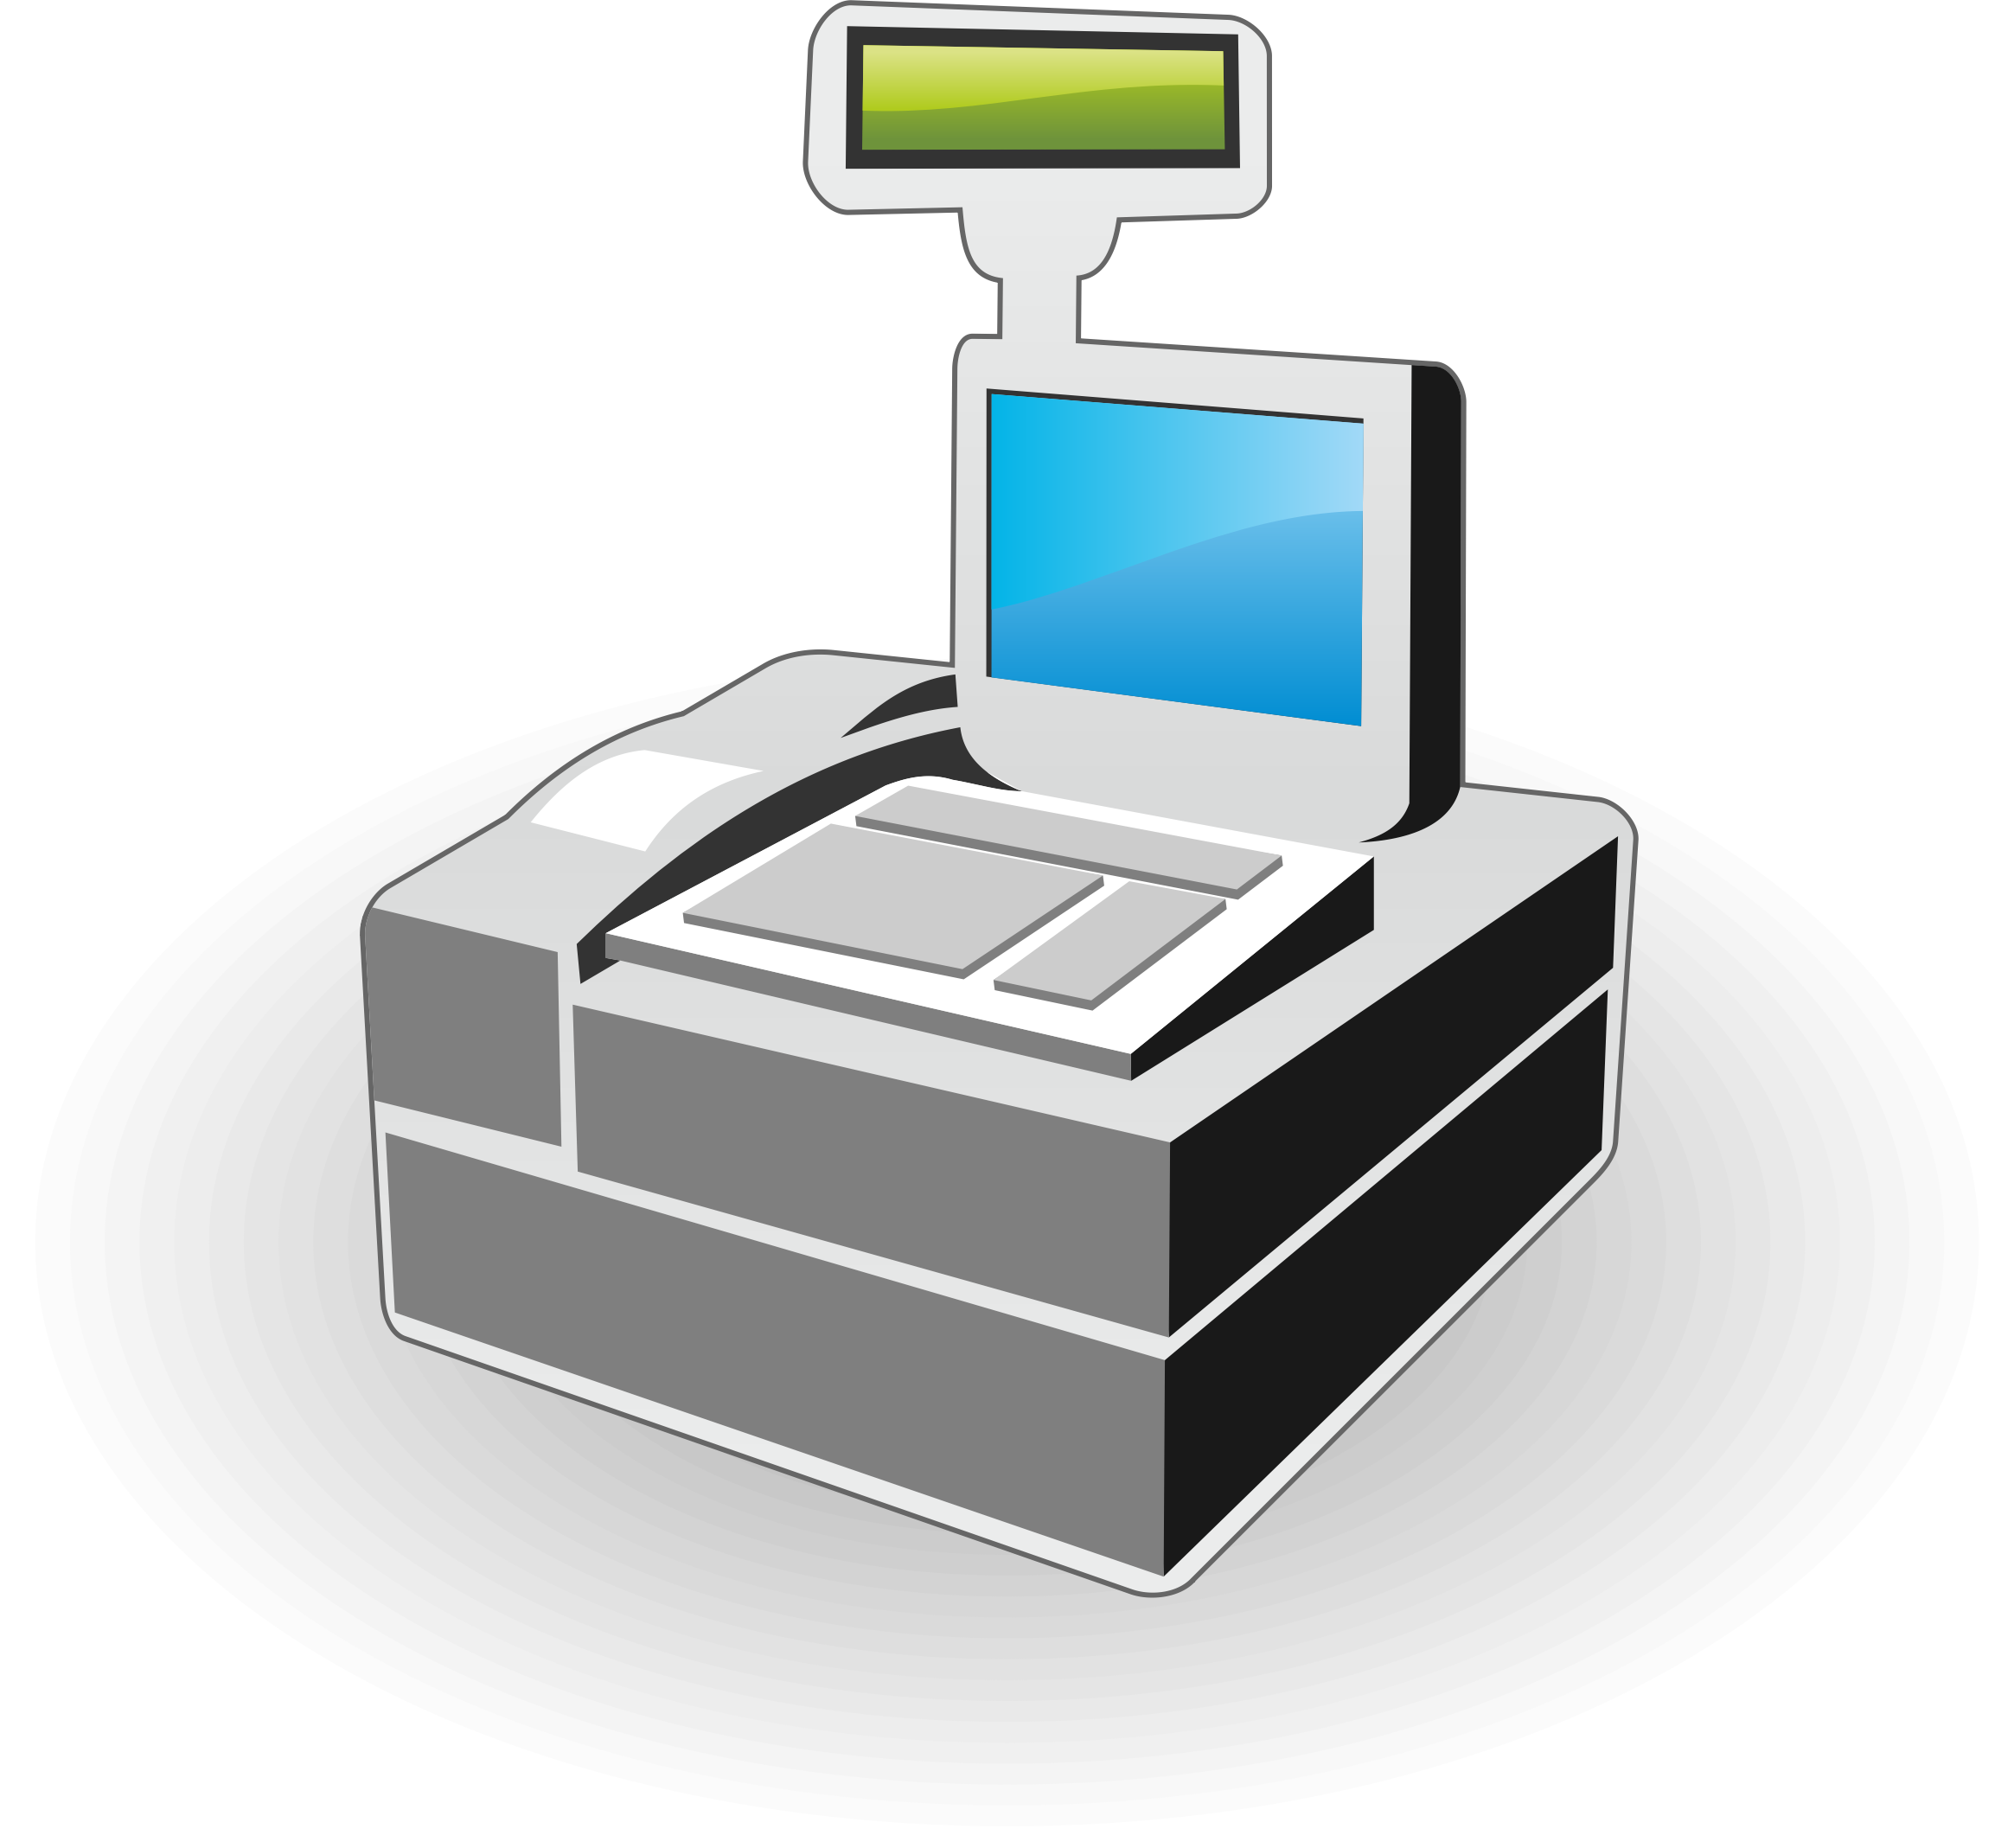 Cash register icon big. Electronics clipart electronic product